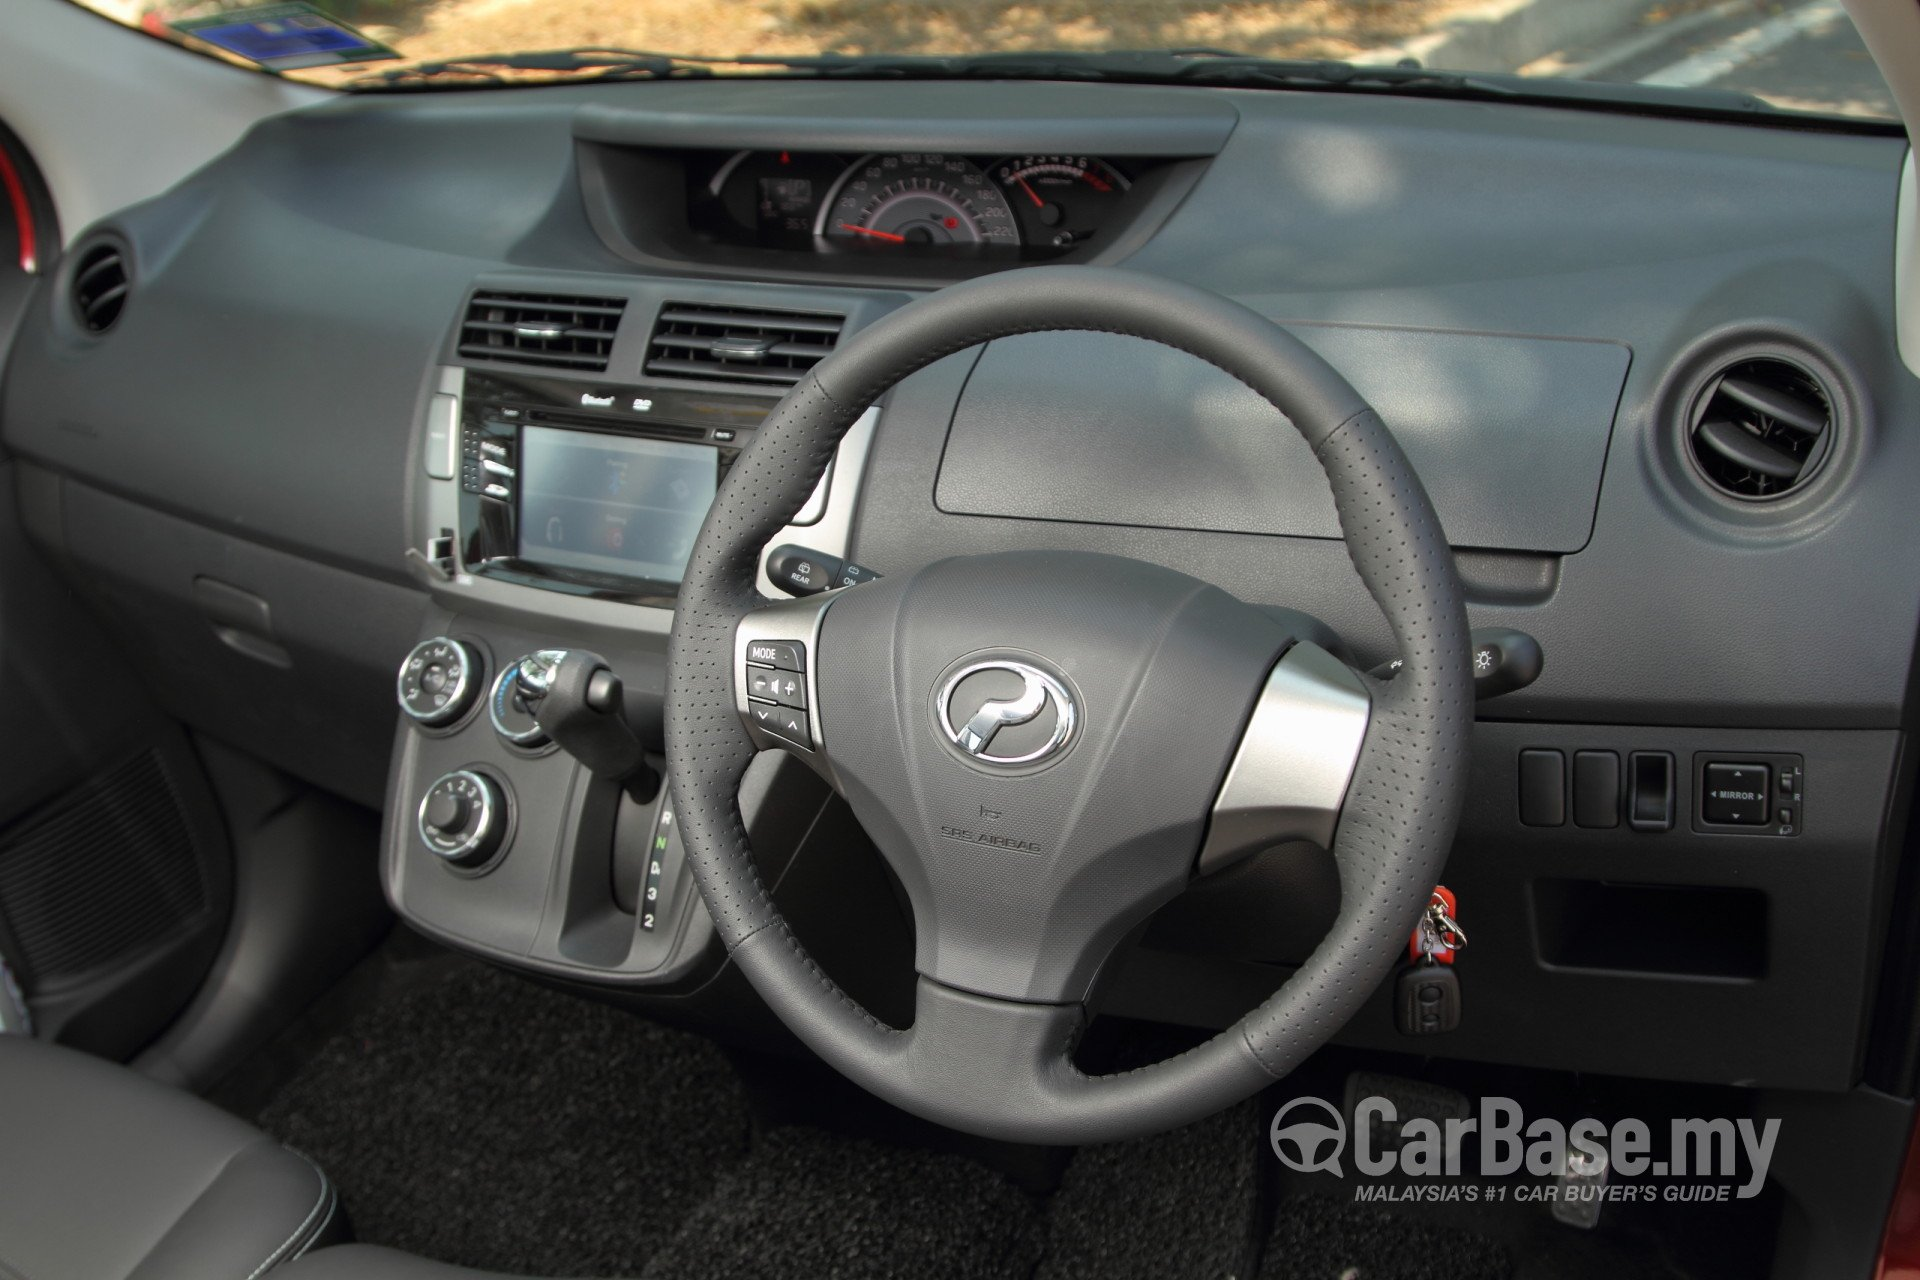 Perodua Alza Mk1 Facelift (2014) Interior Image #8413 in